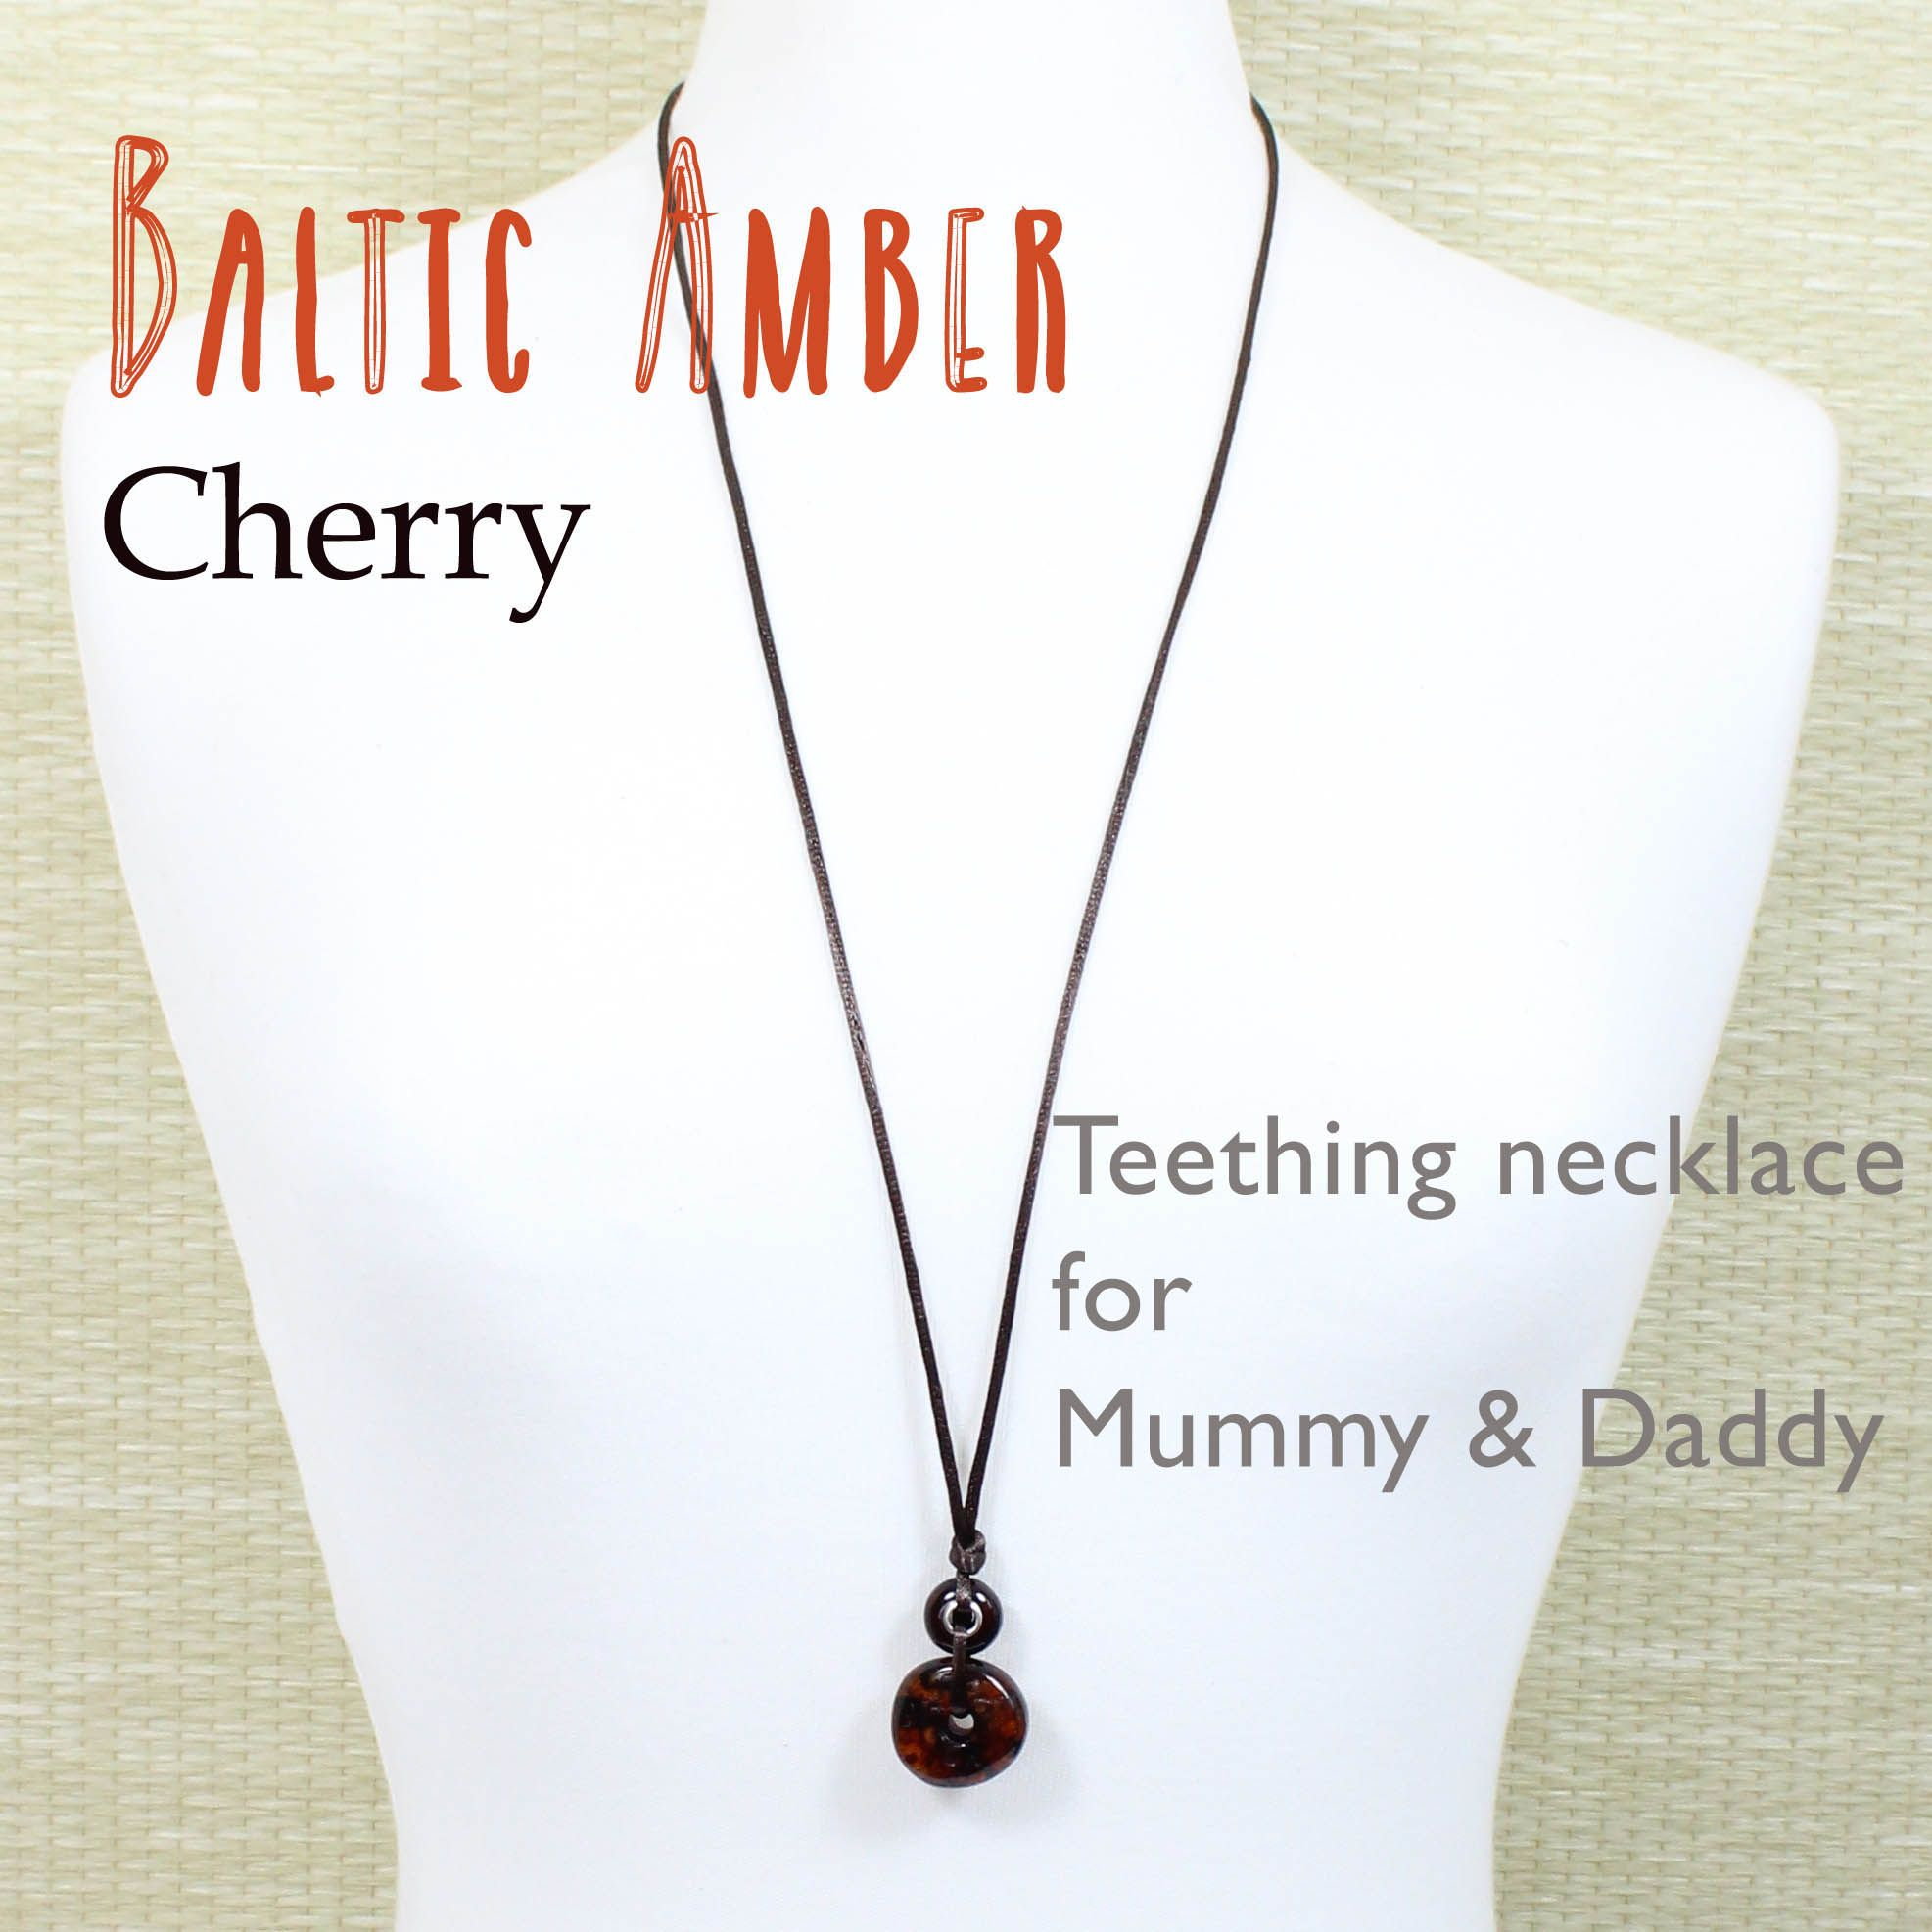 AMBER TEETHING NECKLACE  Do they work?  We've taken a different angle on this by selling #amberteethingnecklaces that are worn by the parents. Read our blog post here  #amberteethingnecklaces #safeparenting